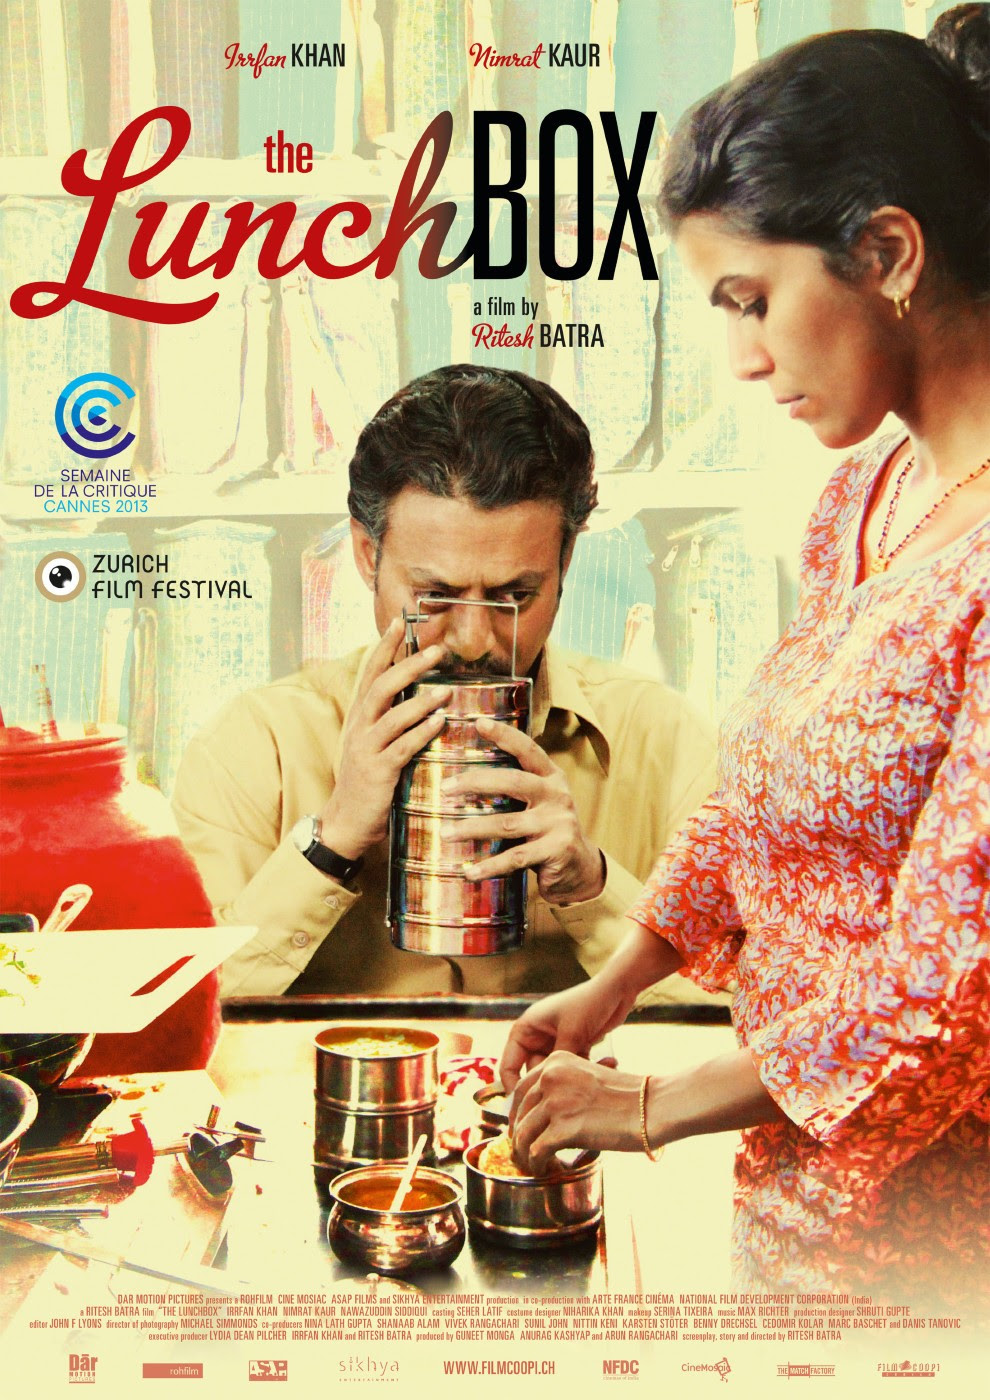 🎬 Movie Review: The Lunchbox